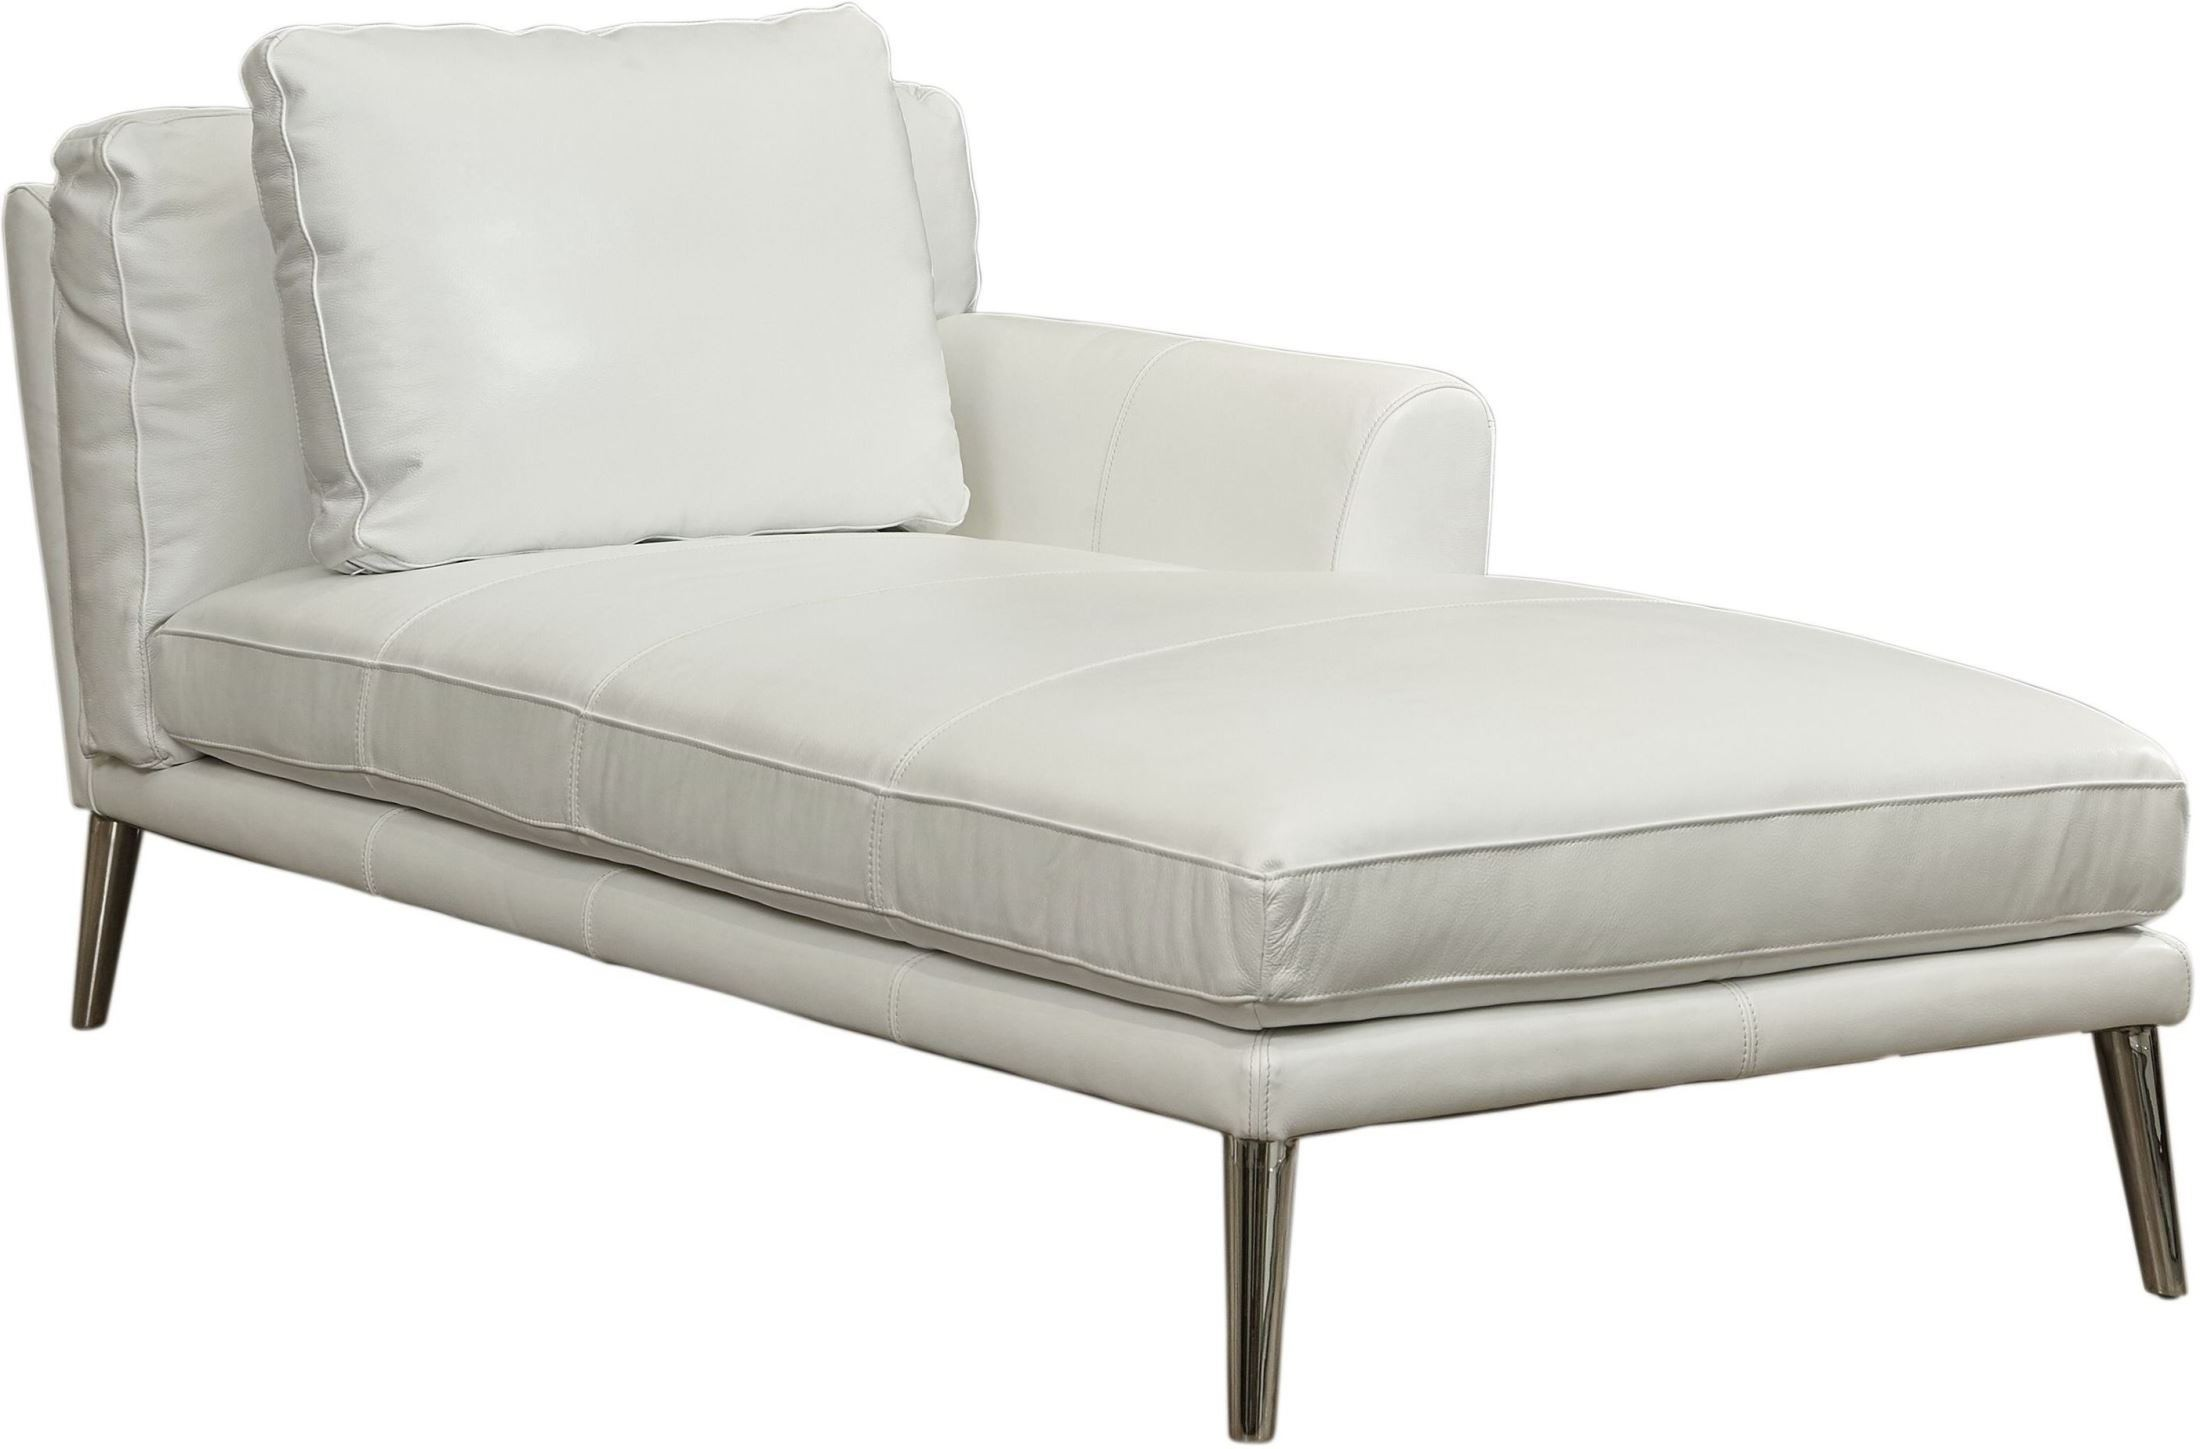 Bali Pure White Top Grain Leather Raf Chaise From Lazzaro